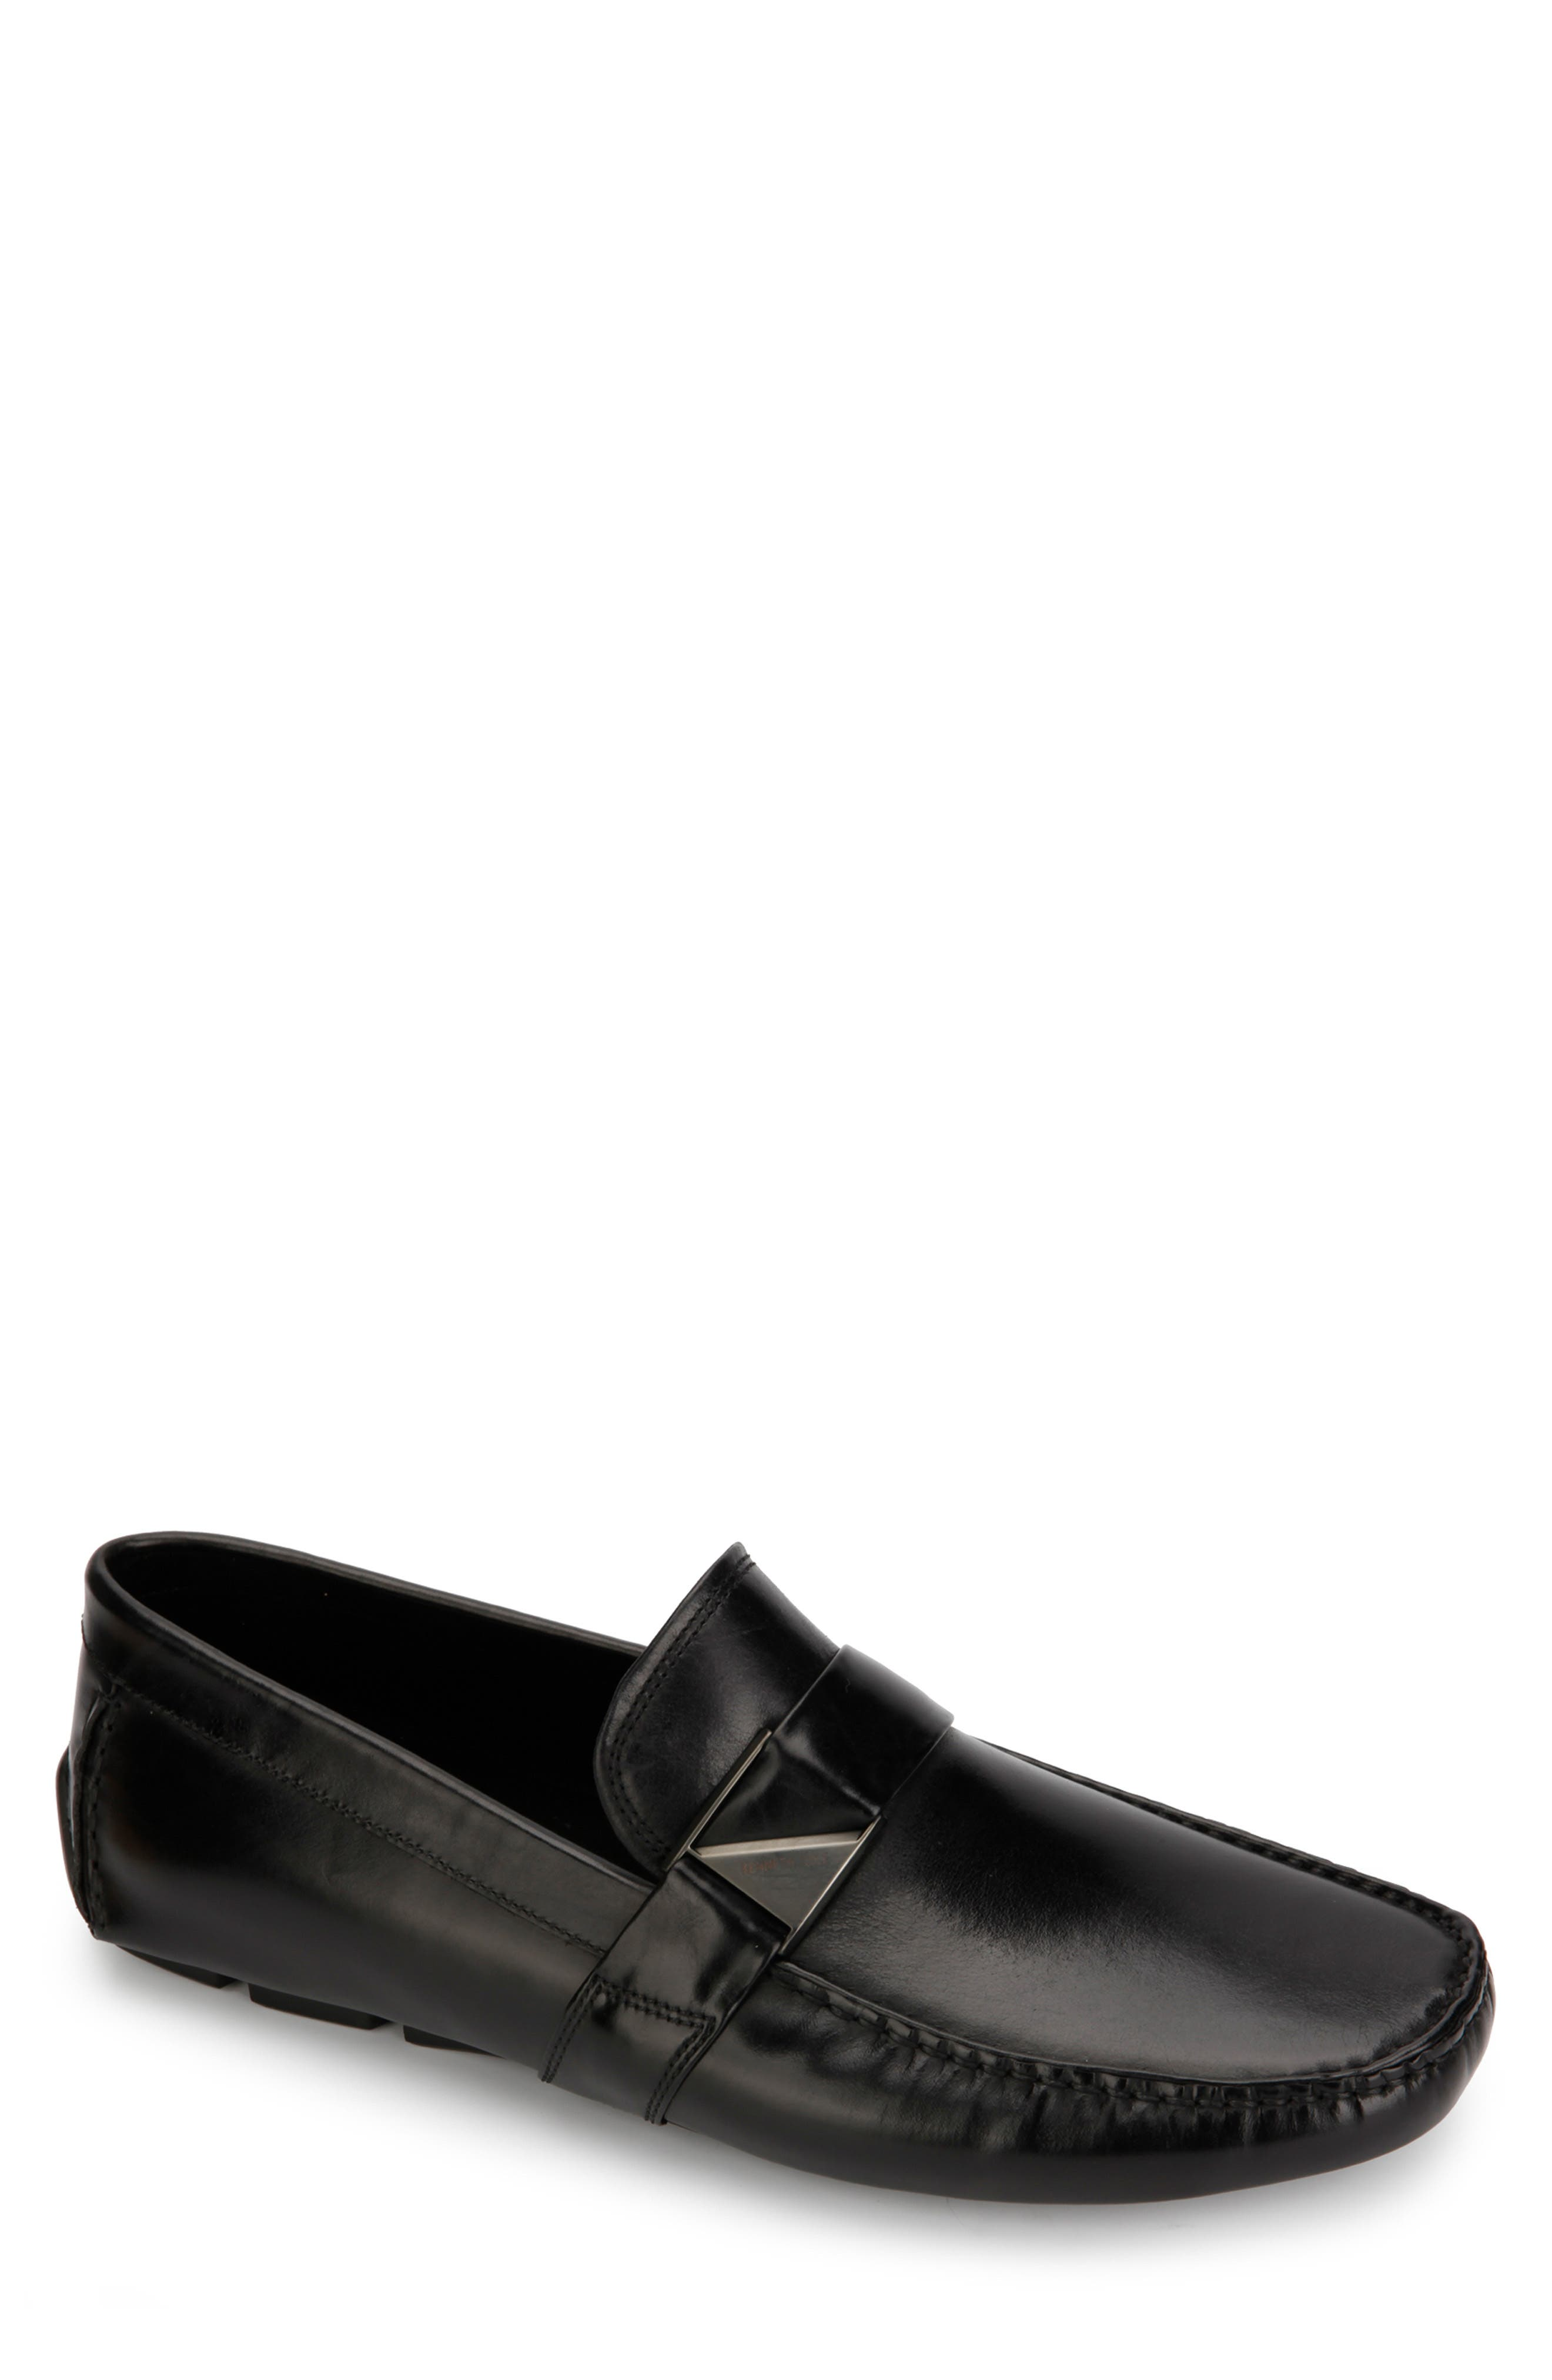 KENNETH COLE NEW YORK Theme Driving Shoe, Main, color, BLACK LEATHER